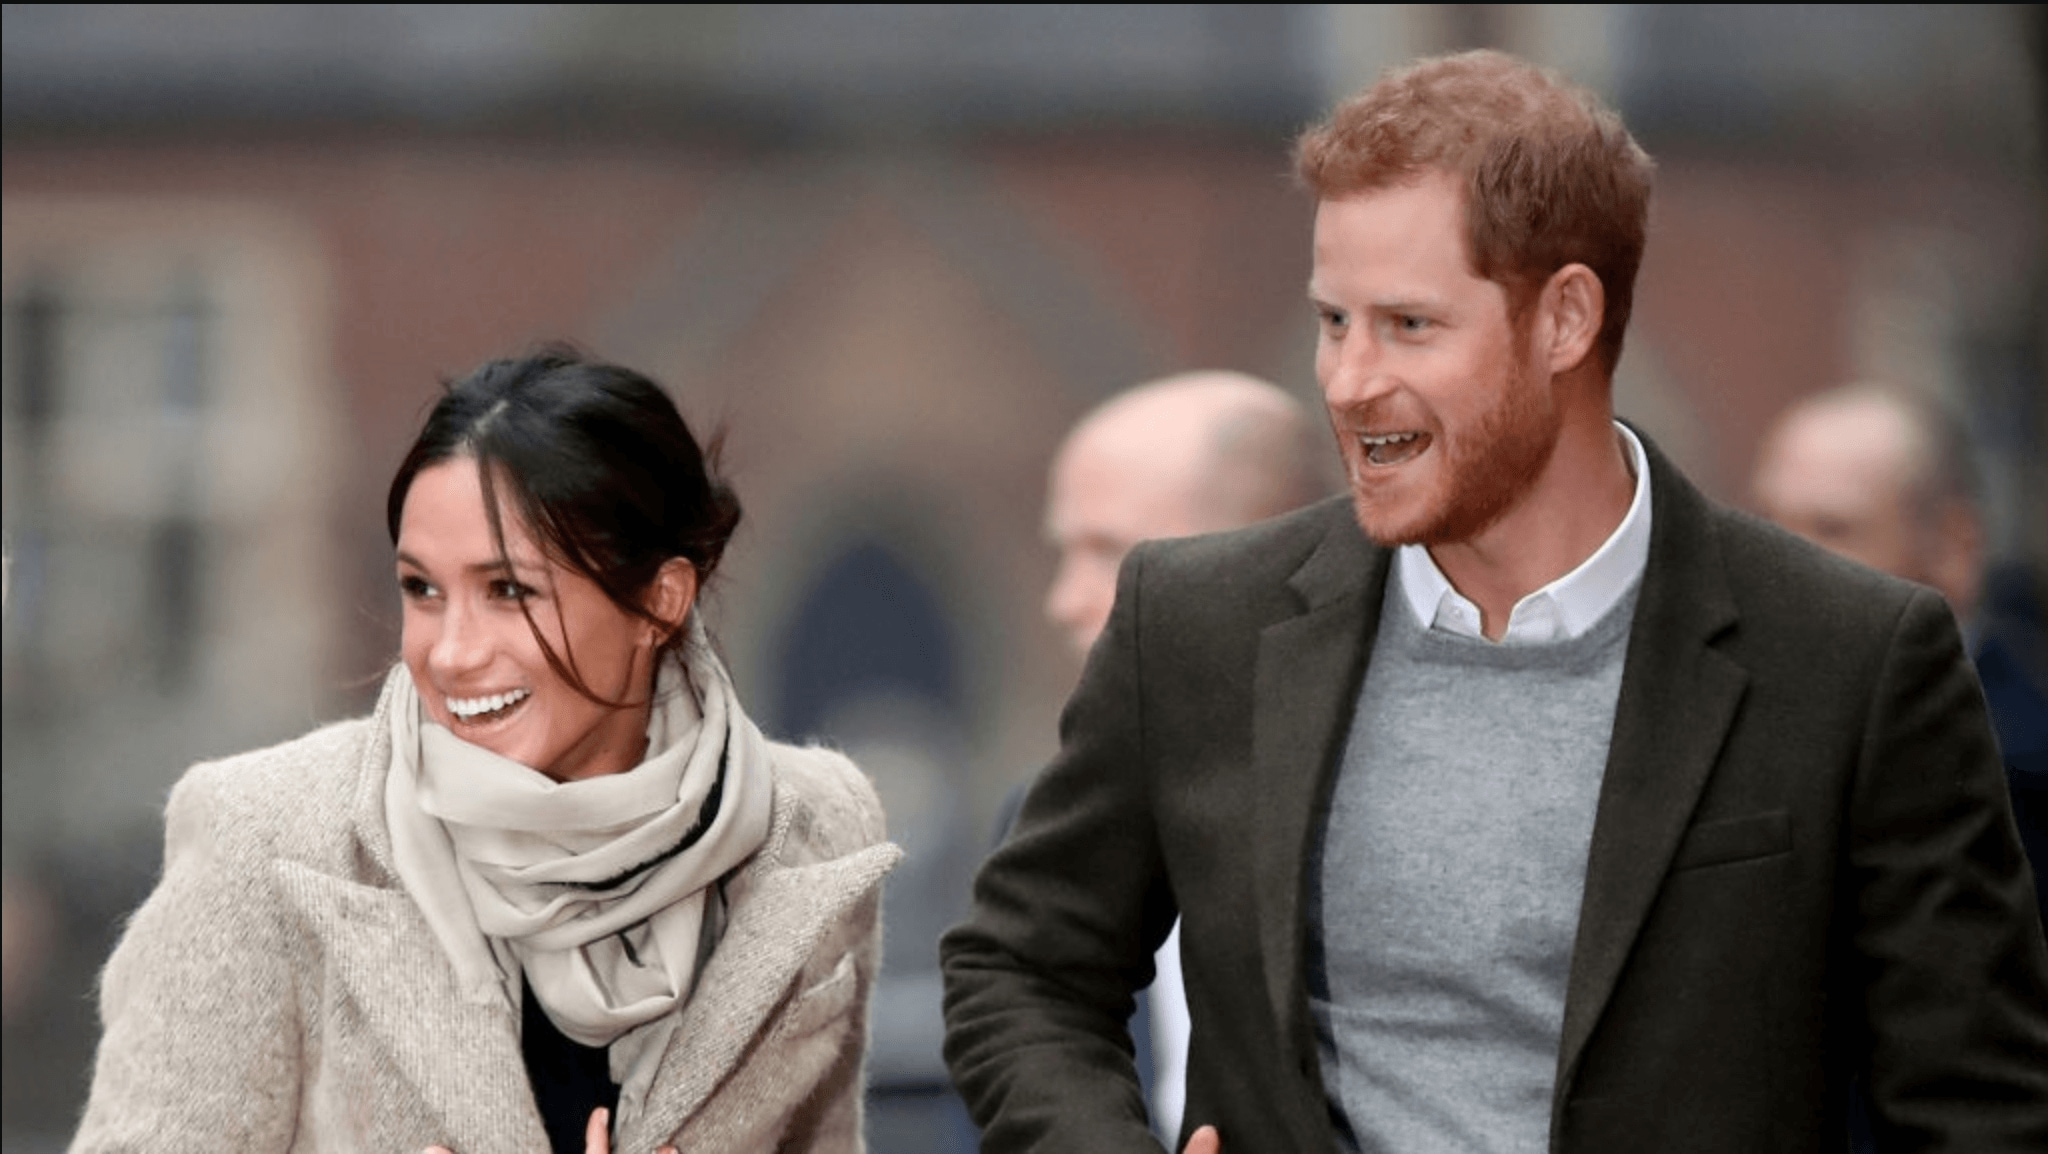 Megan And Harry Wedding.Comedian Says House Britain S Homeless As Royal Wedding Gift For